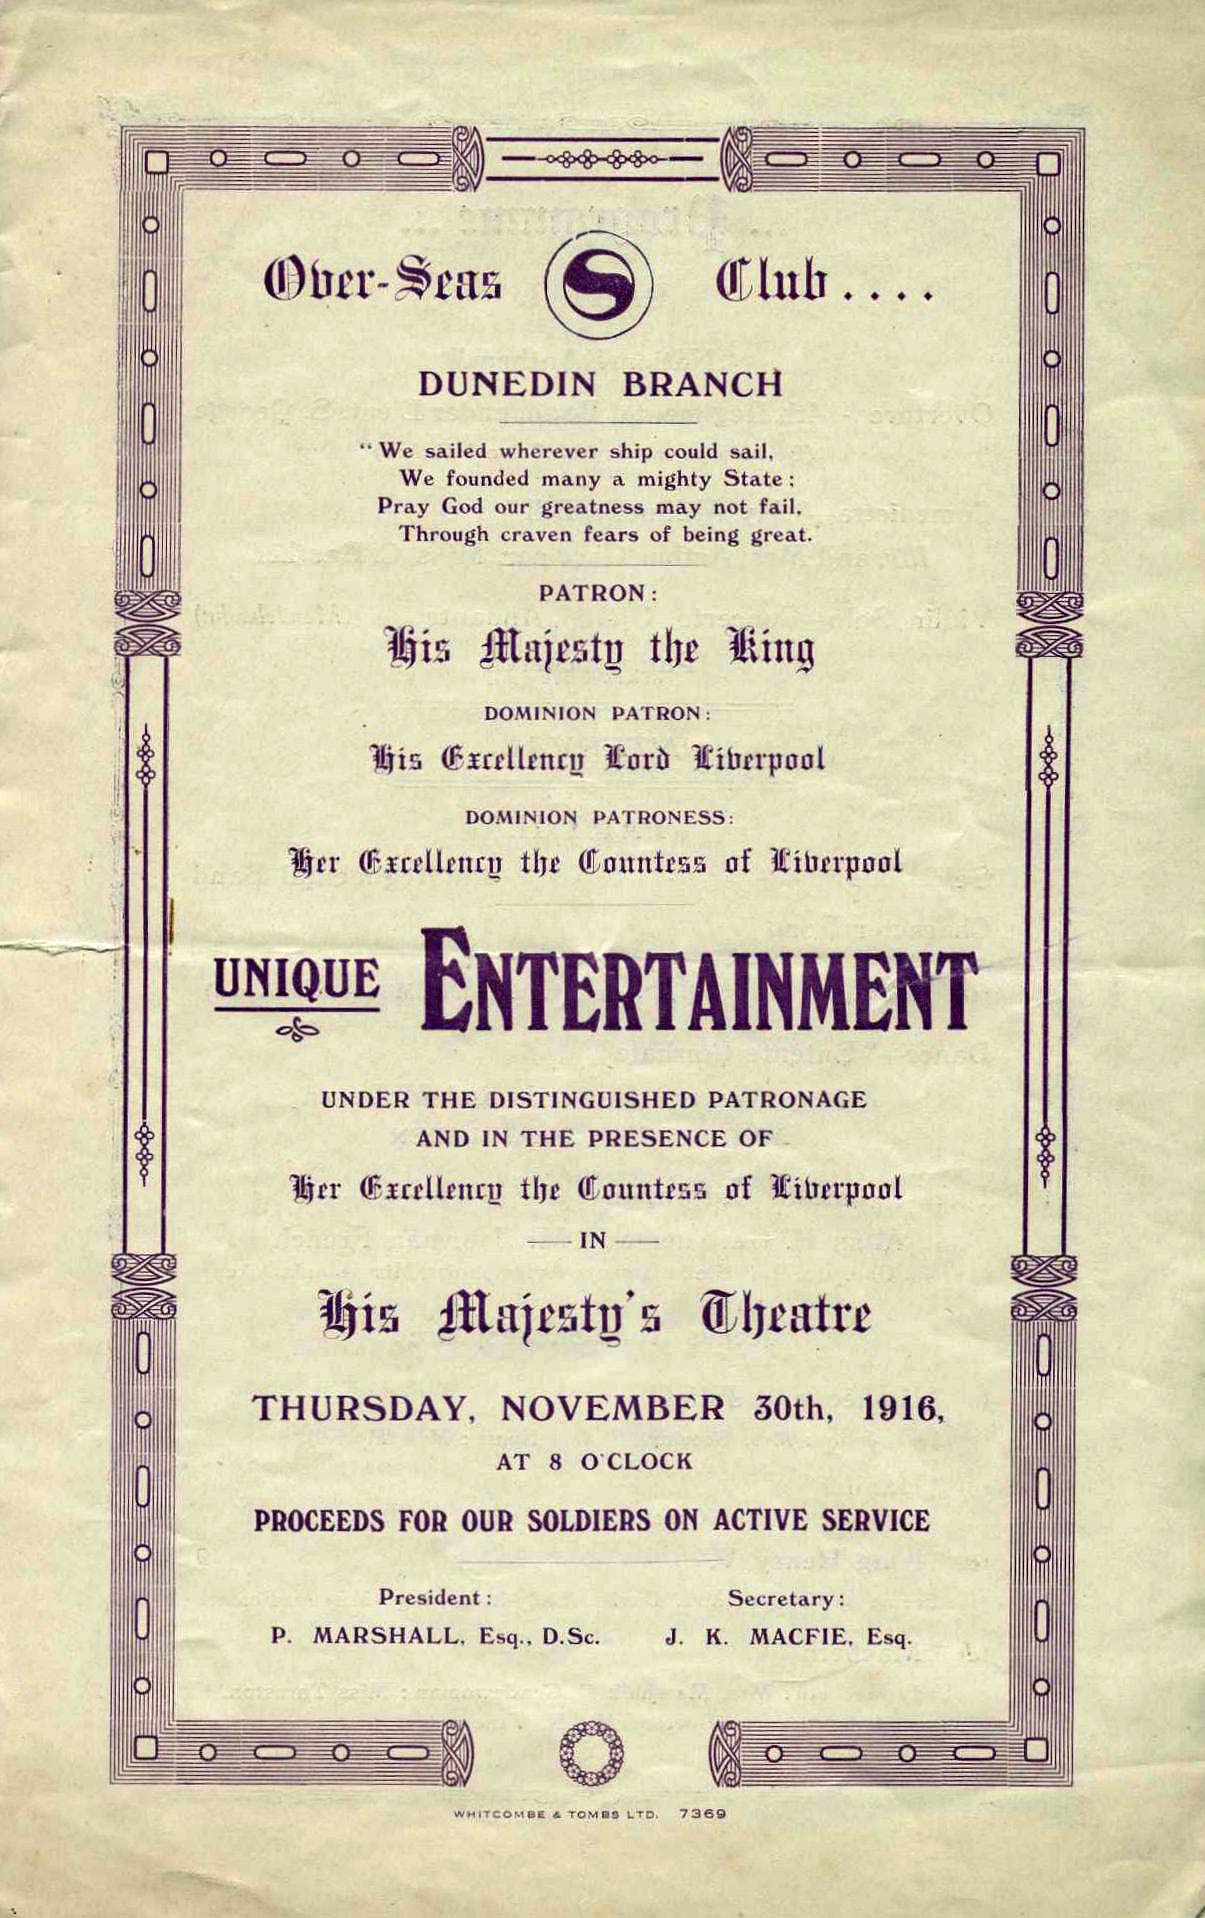 <em>Unique entertainment under the distinguished patronage and in the presence of Her Excellency the Countess of Liverpool</em>. (Over-Seas Club, Dunedin Branch). His Majesty's Theatre, Dunedin, Nov. 30, 1916.